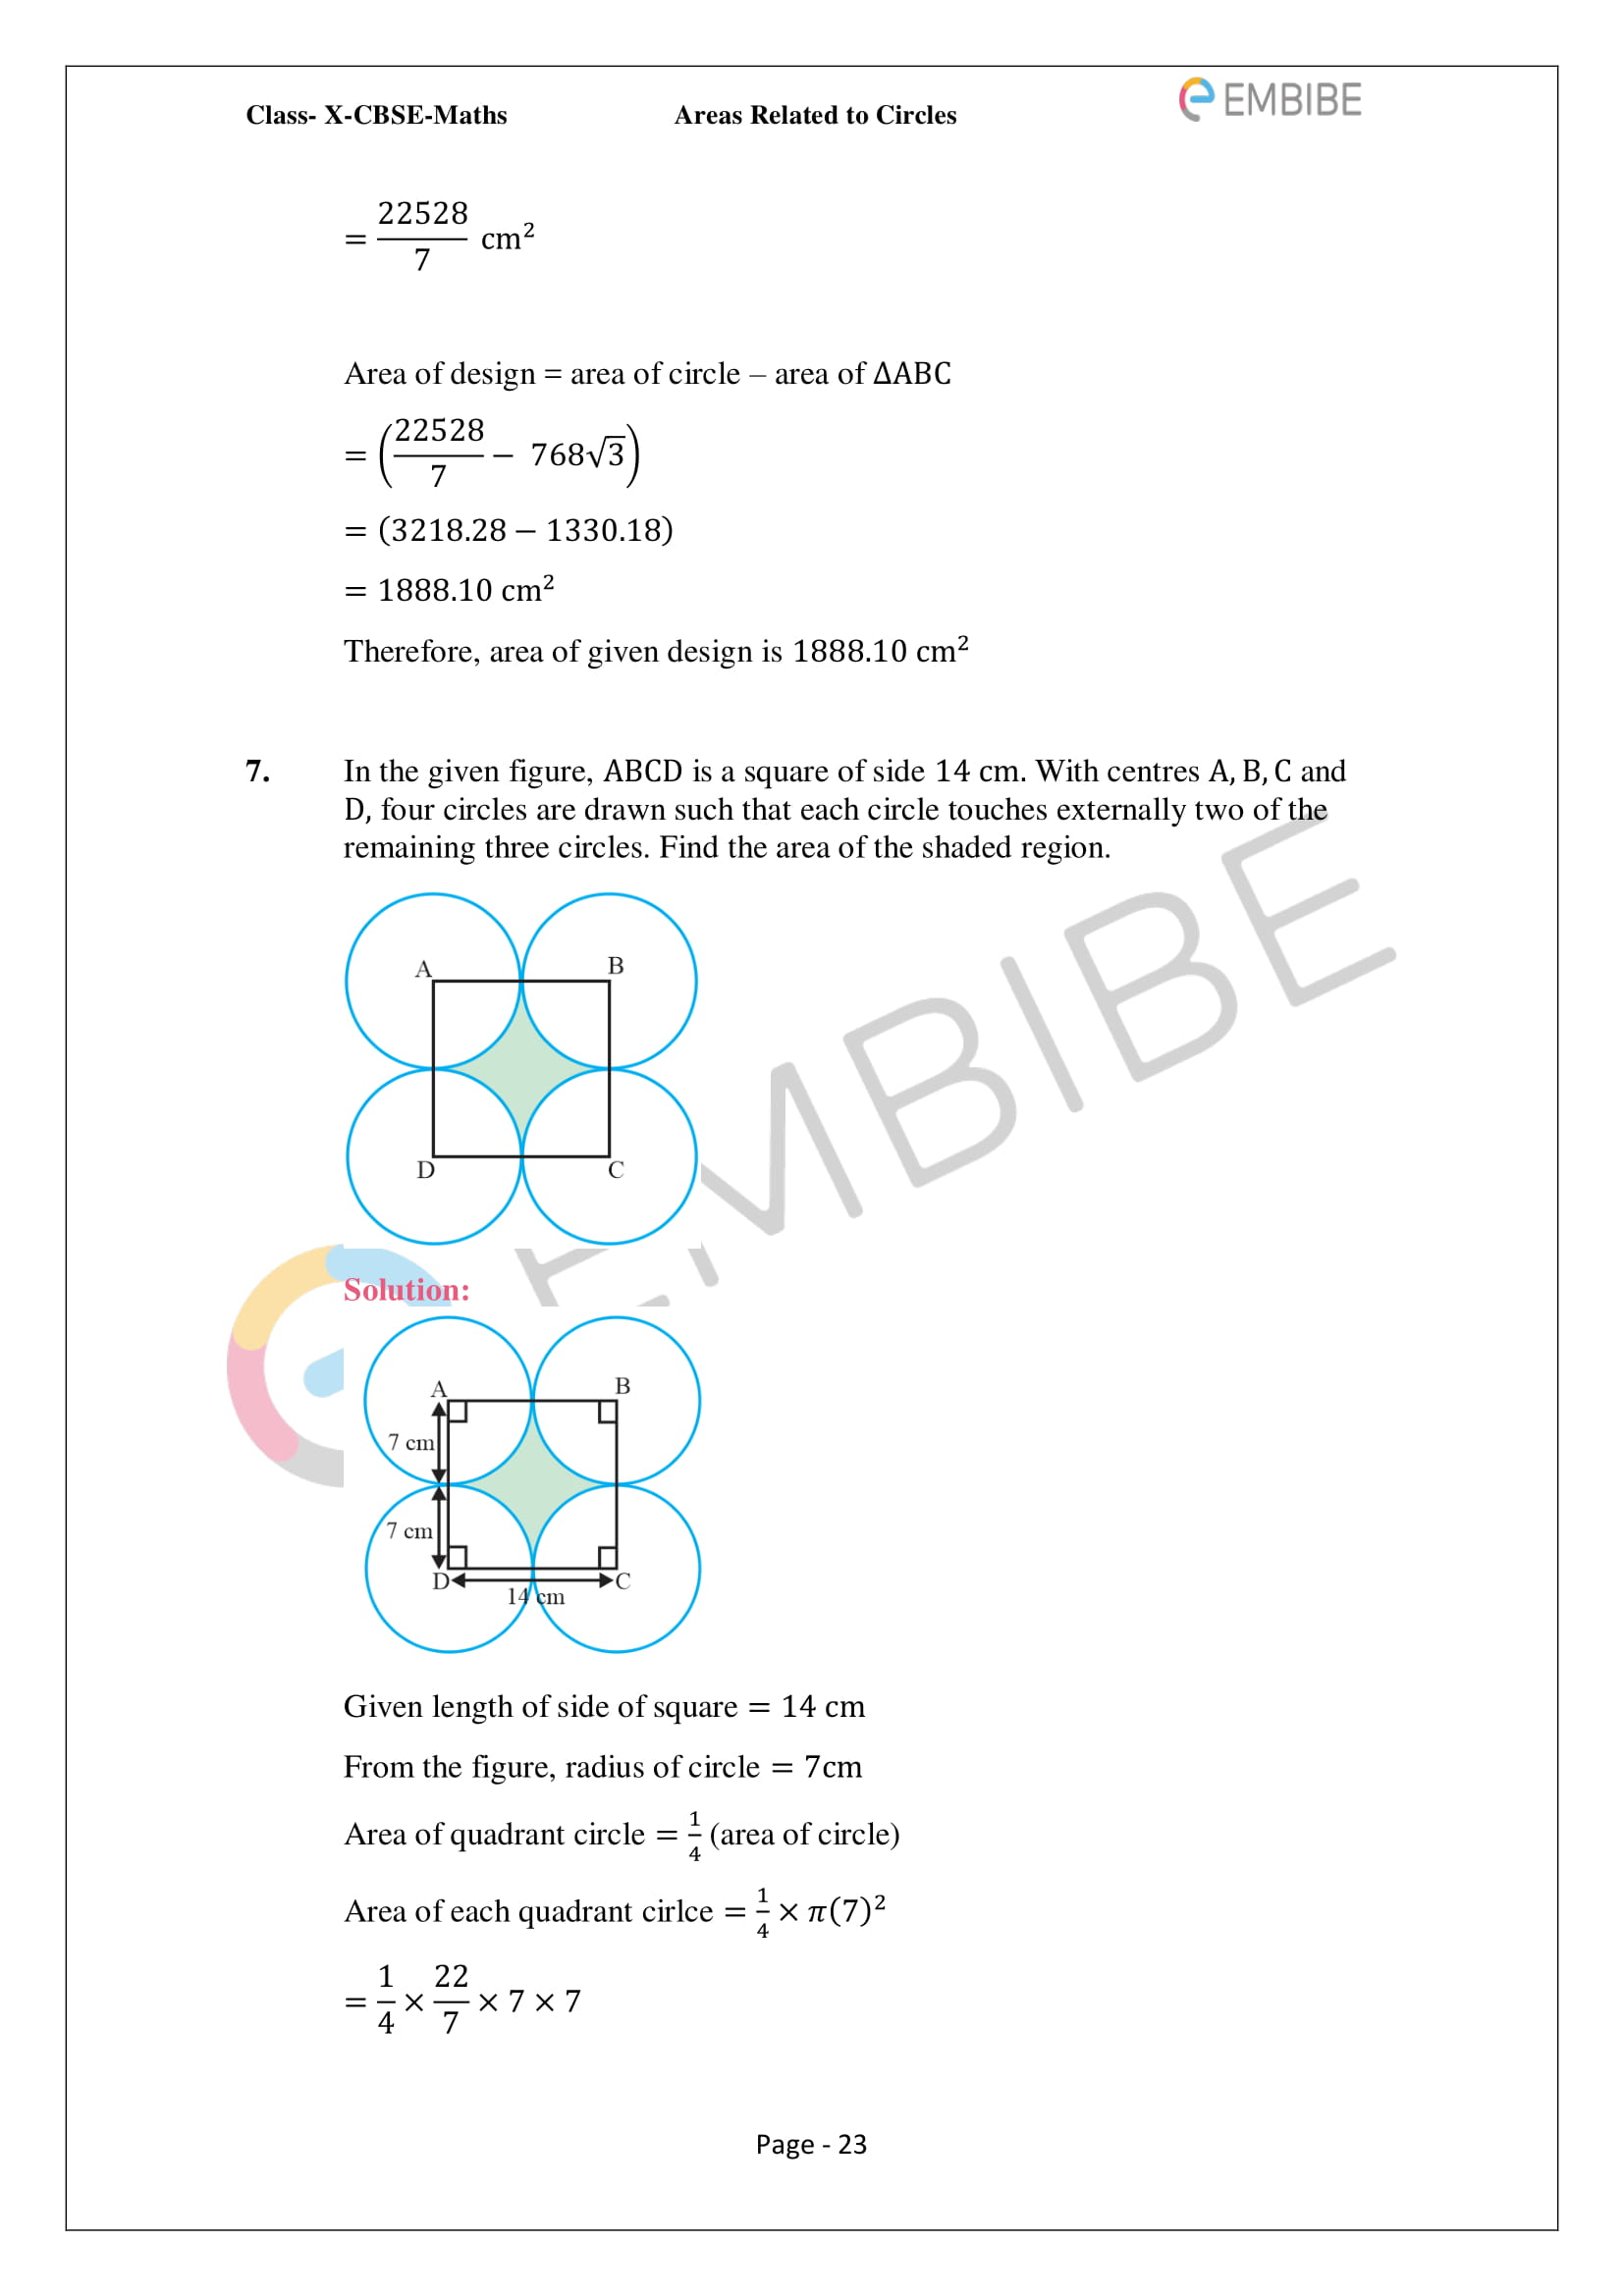 CBSE NCERT Solutions For Class 10 Maths Chapter 12 - Areas Related To Circle - 23